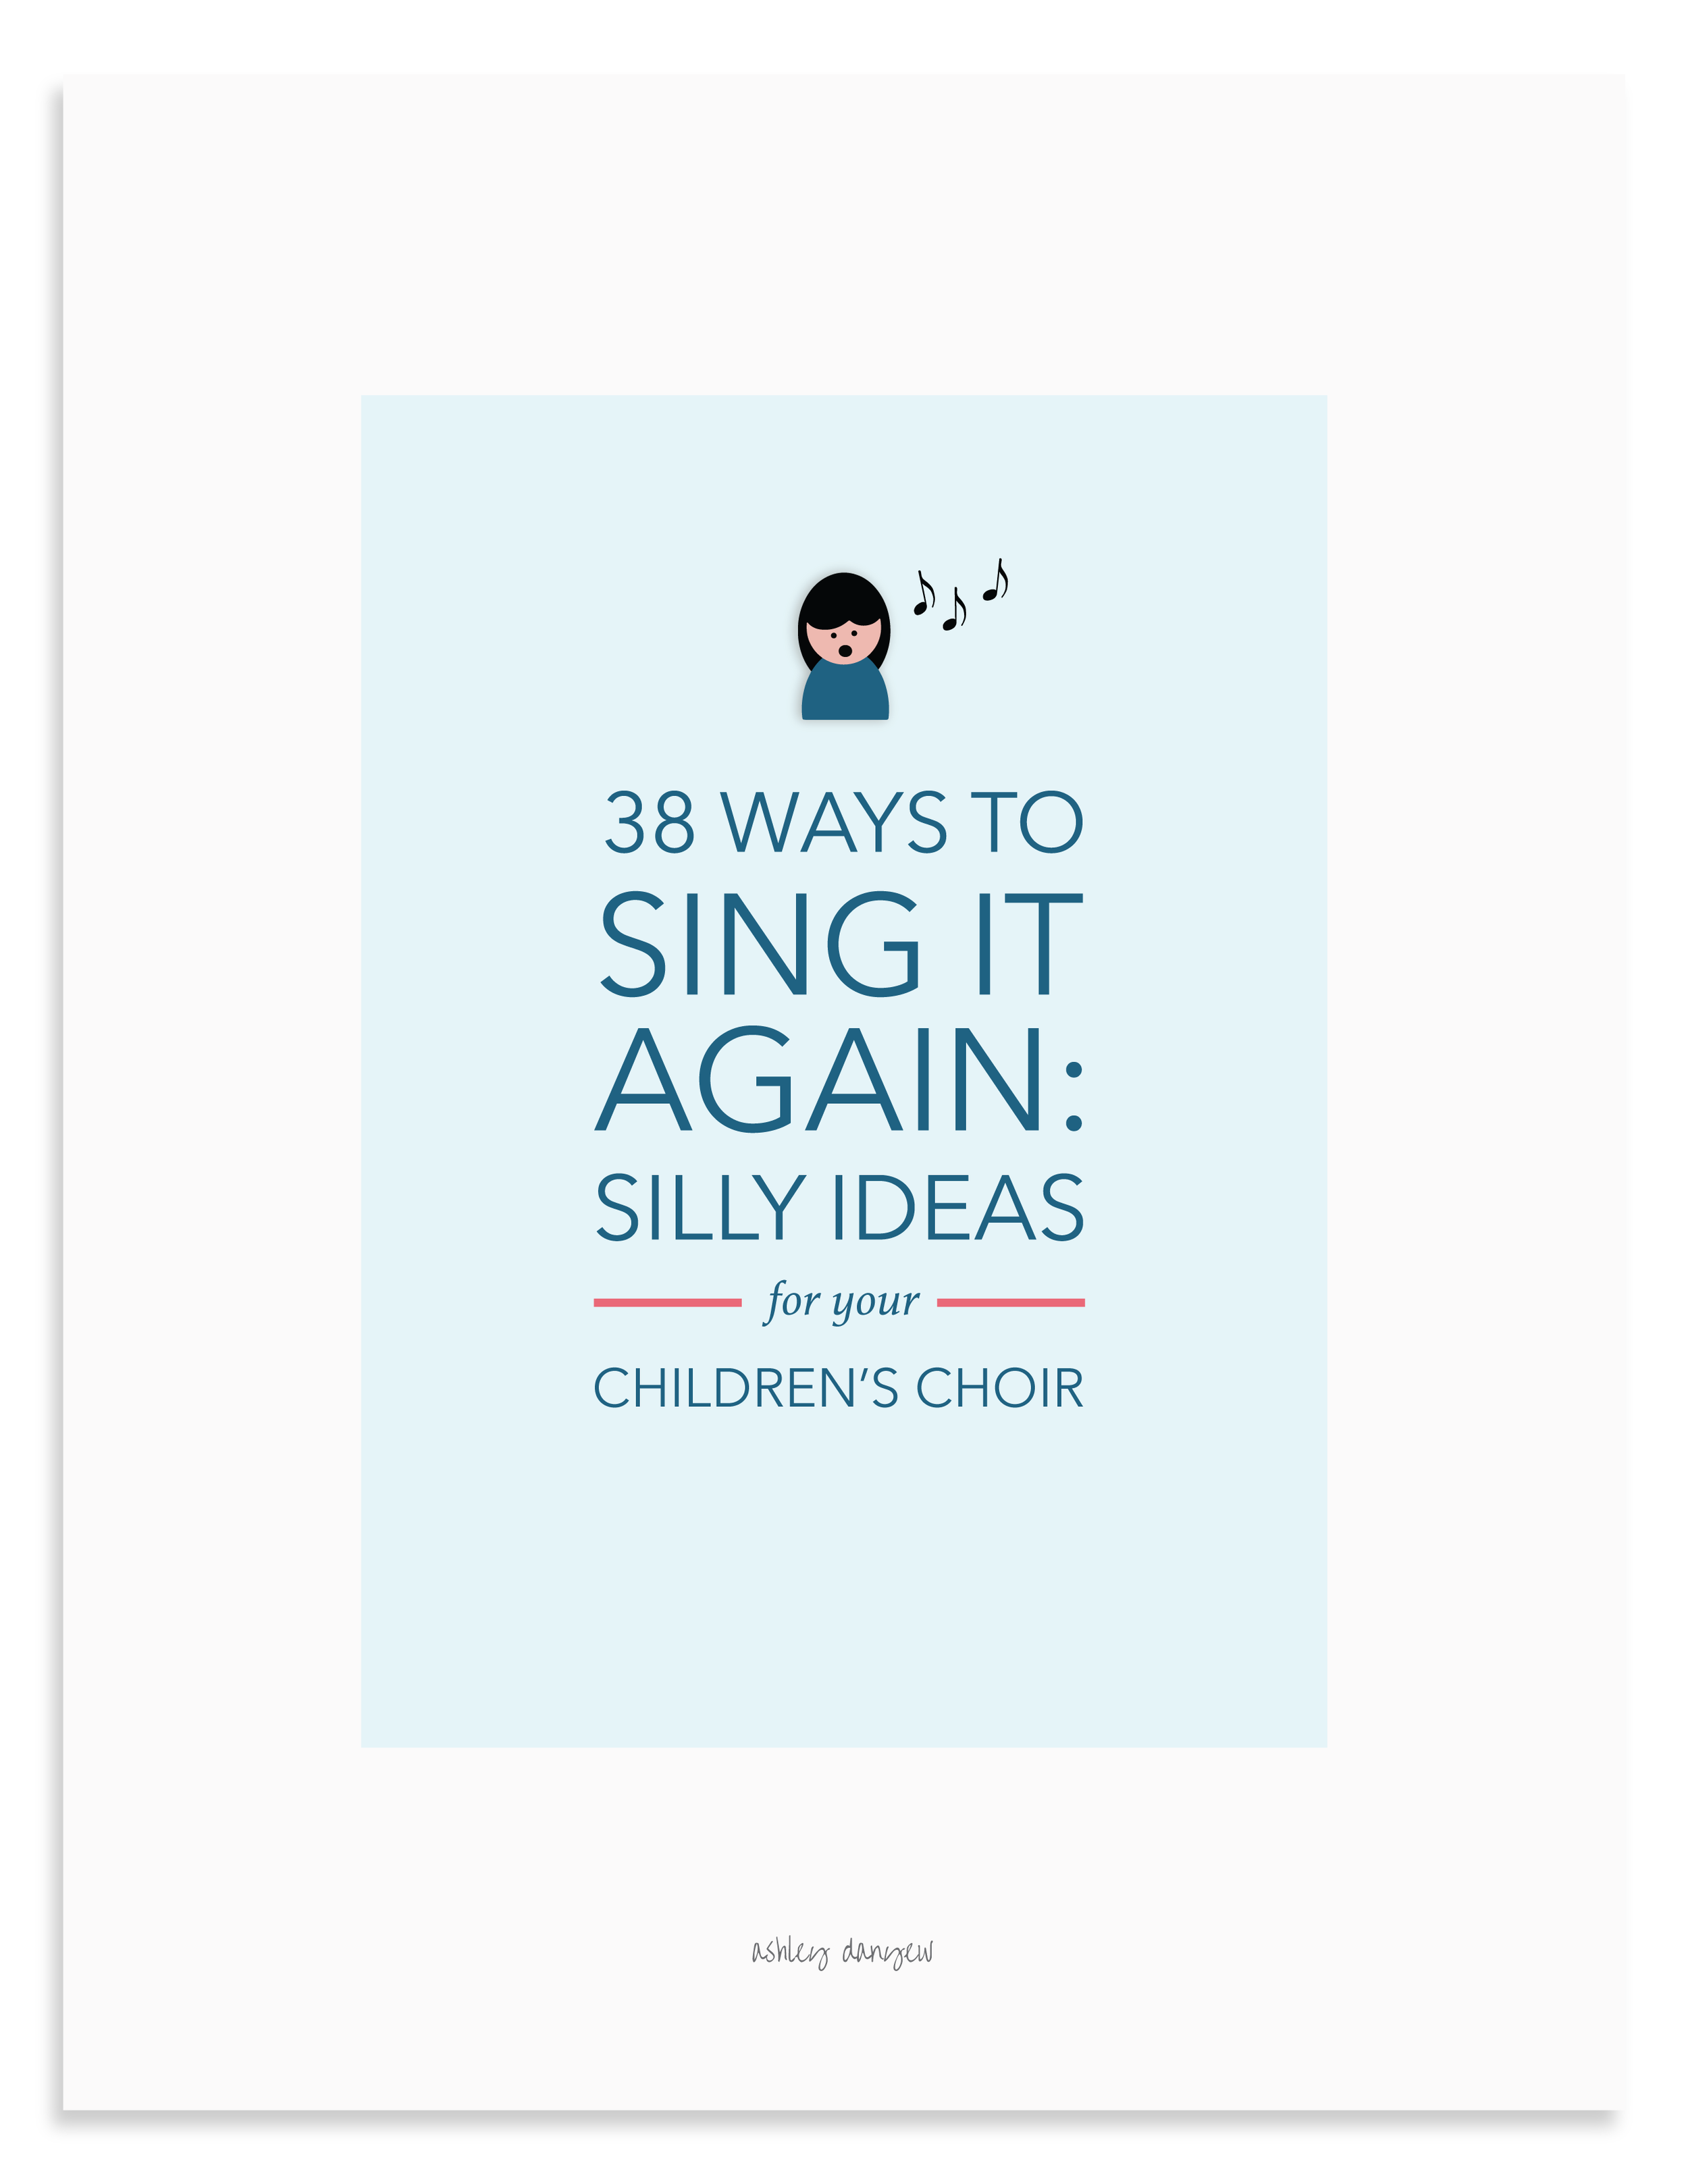 38 Ways to Sing it Again: Silly Ideas for Your Children's Choir - free printable card set.png